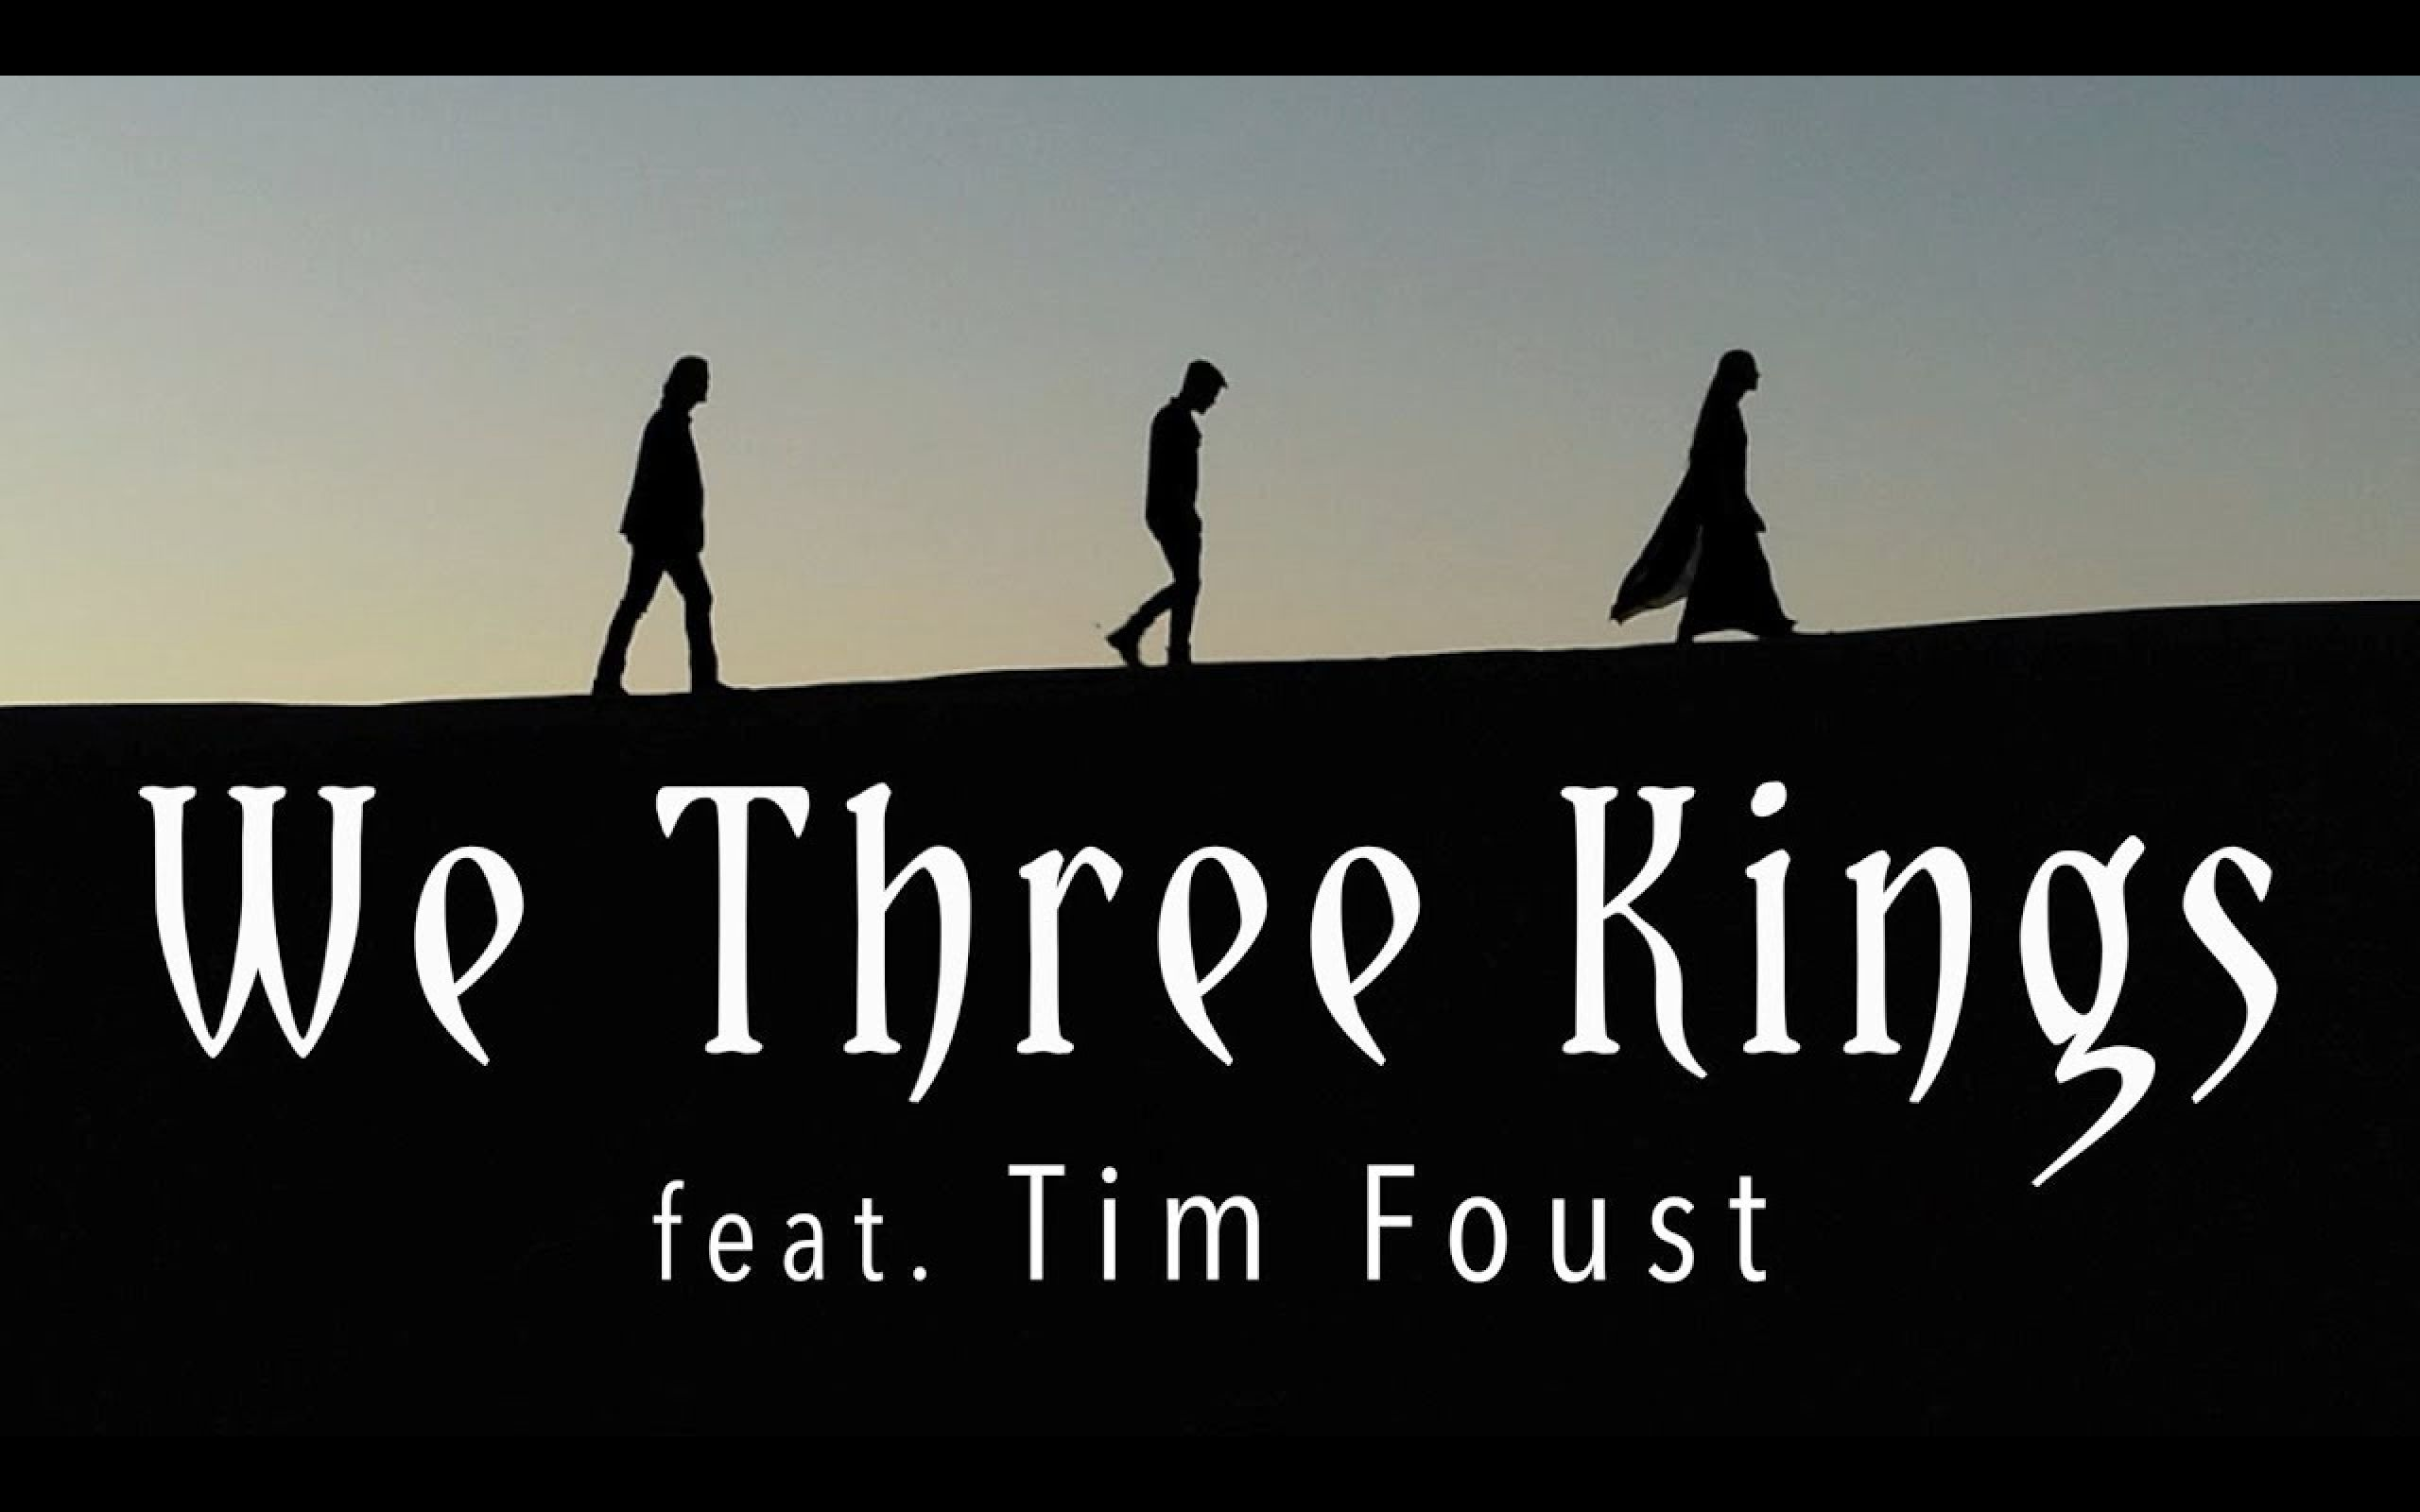 【男低音】We Three Kings (feat. Tim Foust) The Hound + The Fox